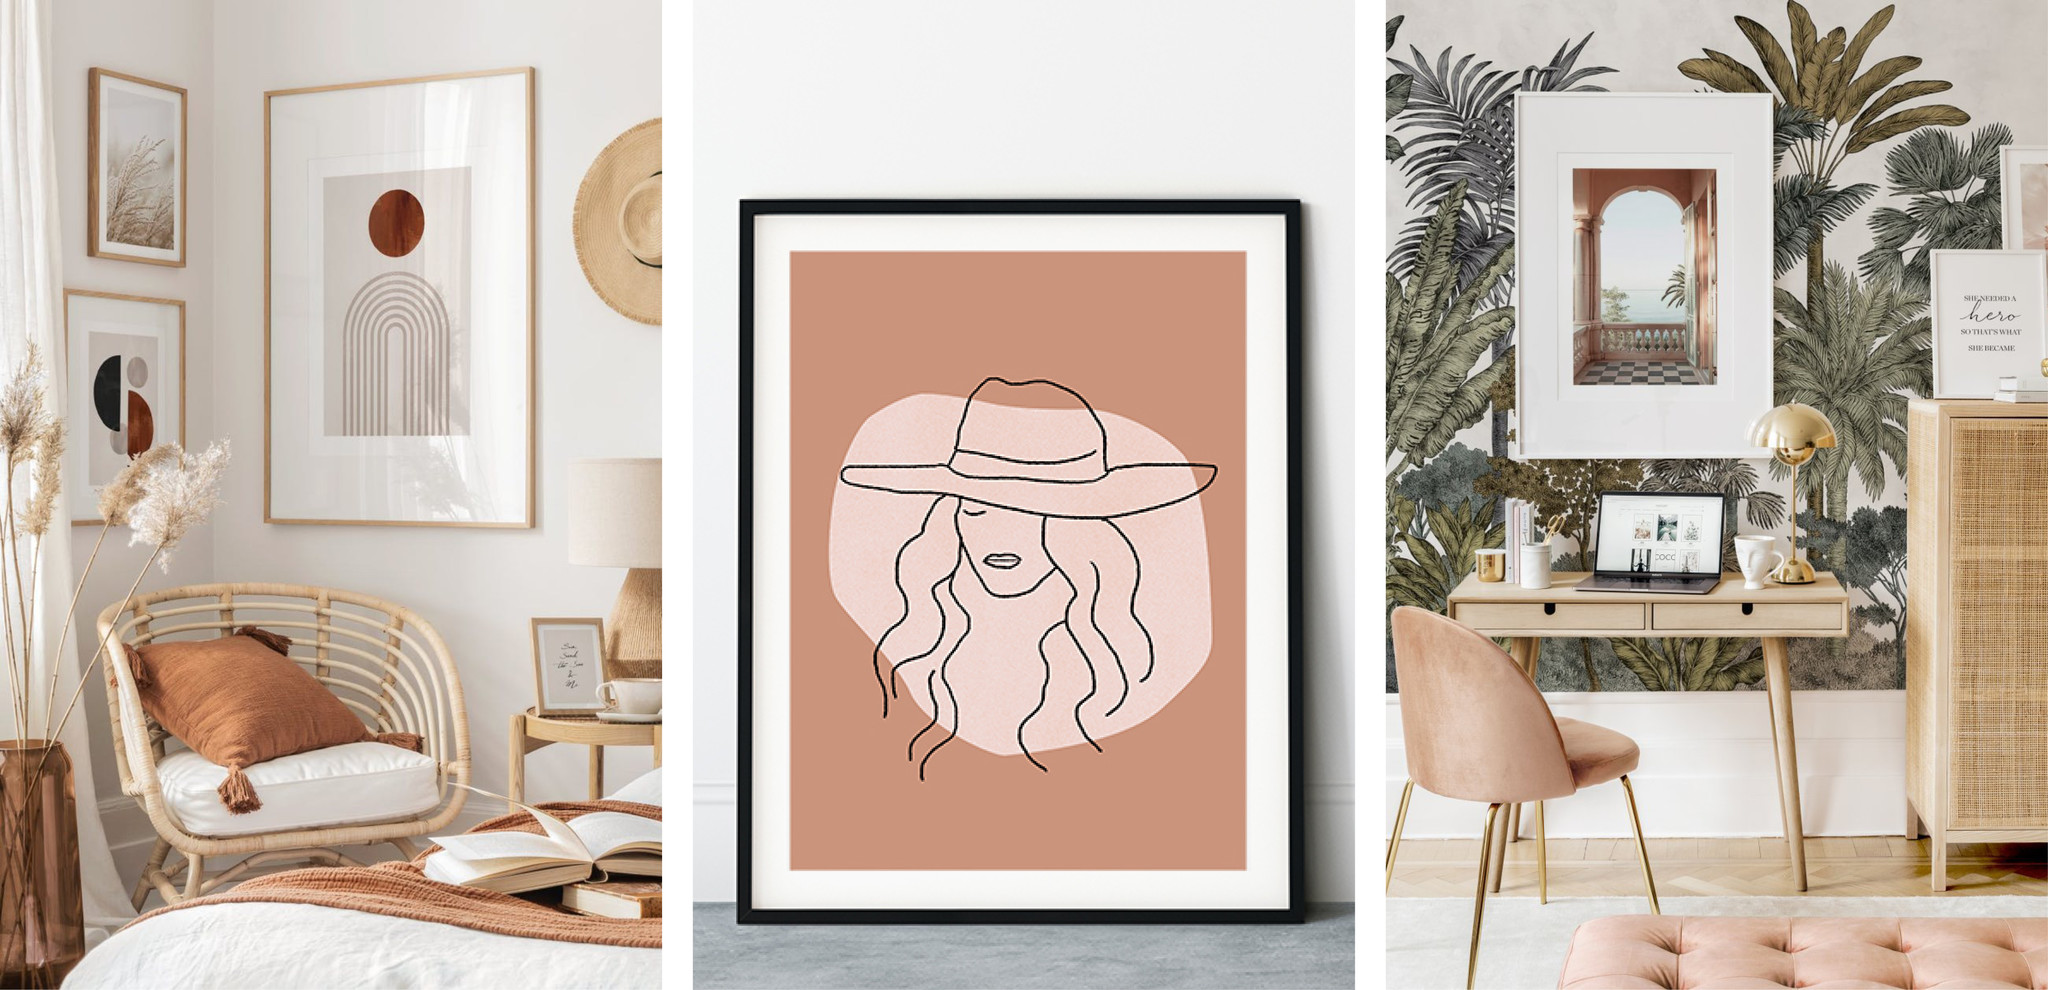 The Trend Girls - Styling Poster Wall